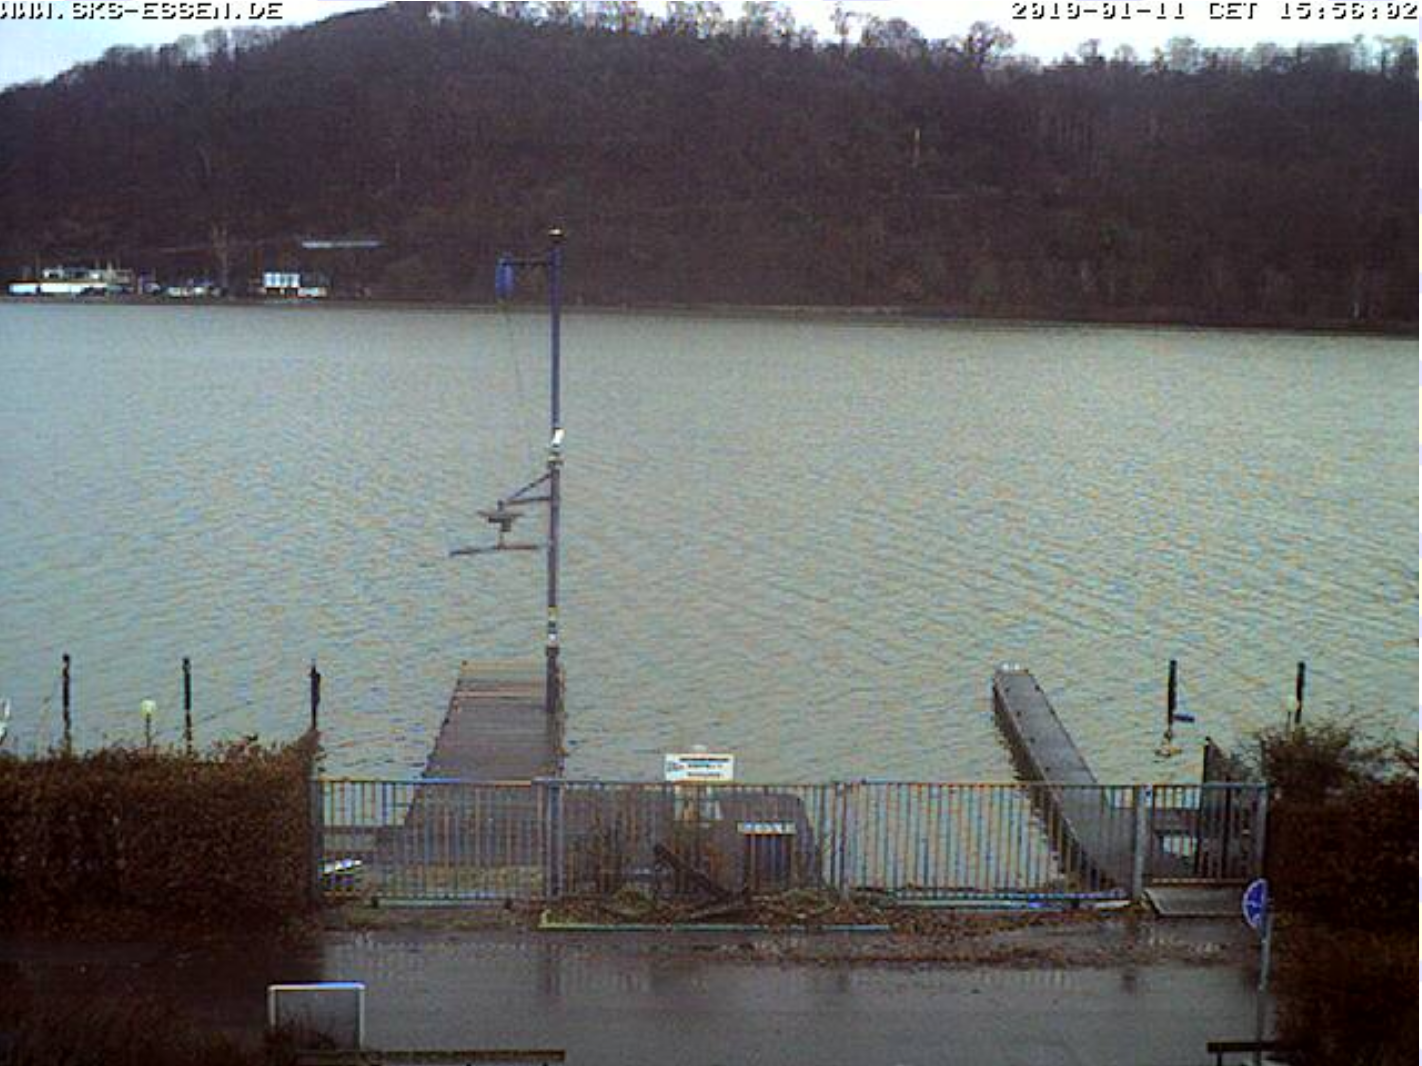 Live from the regatta course: No. 1 + 2 Baldeneysee + Aasee